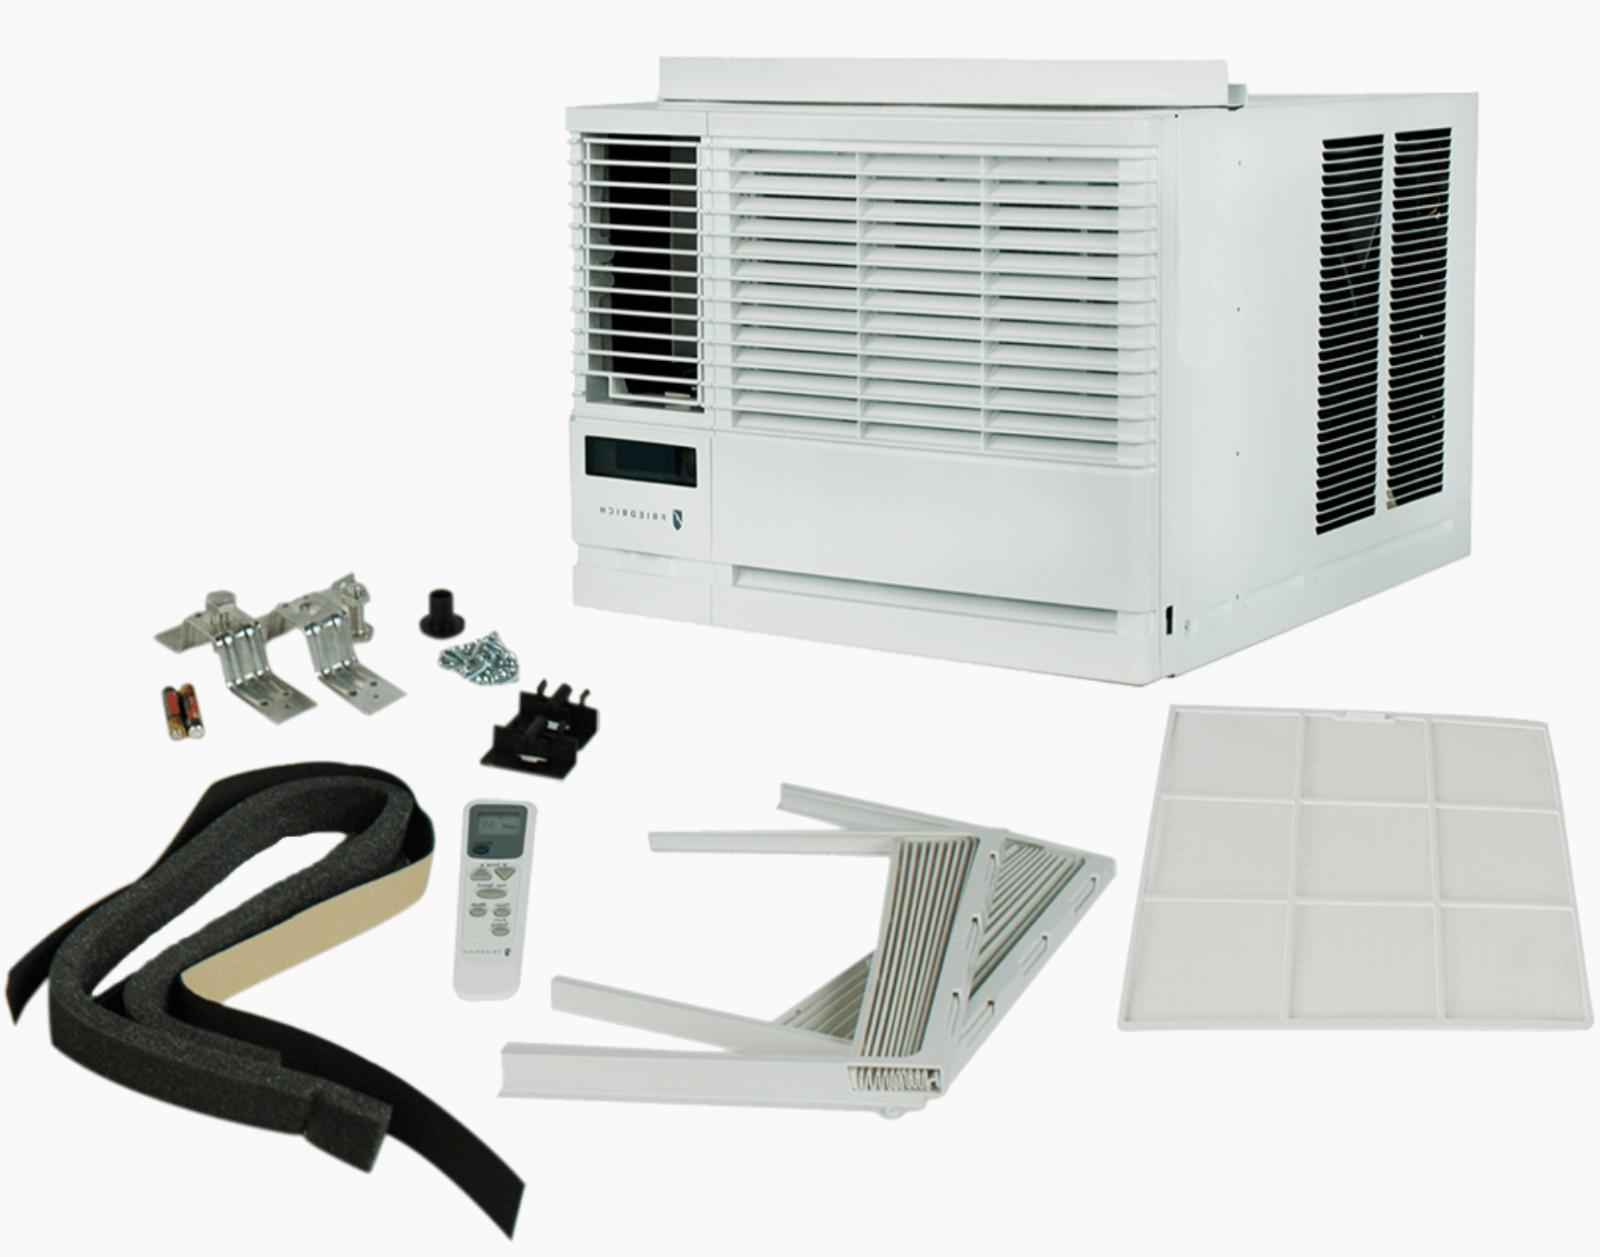 NEW! FRIEDRICH CHILL SERIES ROOM AIR CONDITIONER, 115V, 15,5